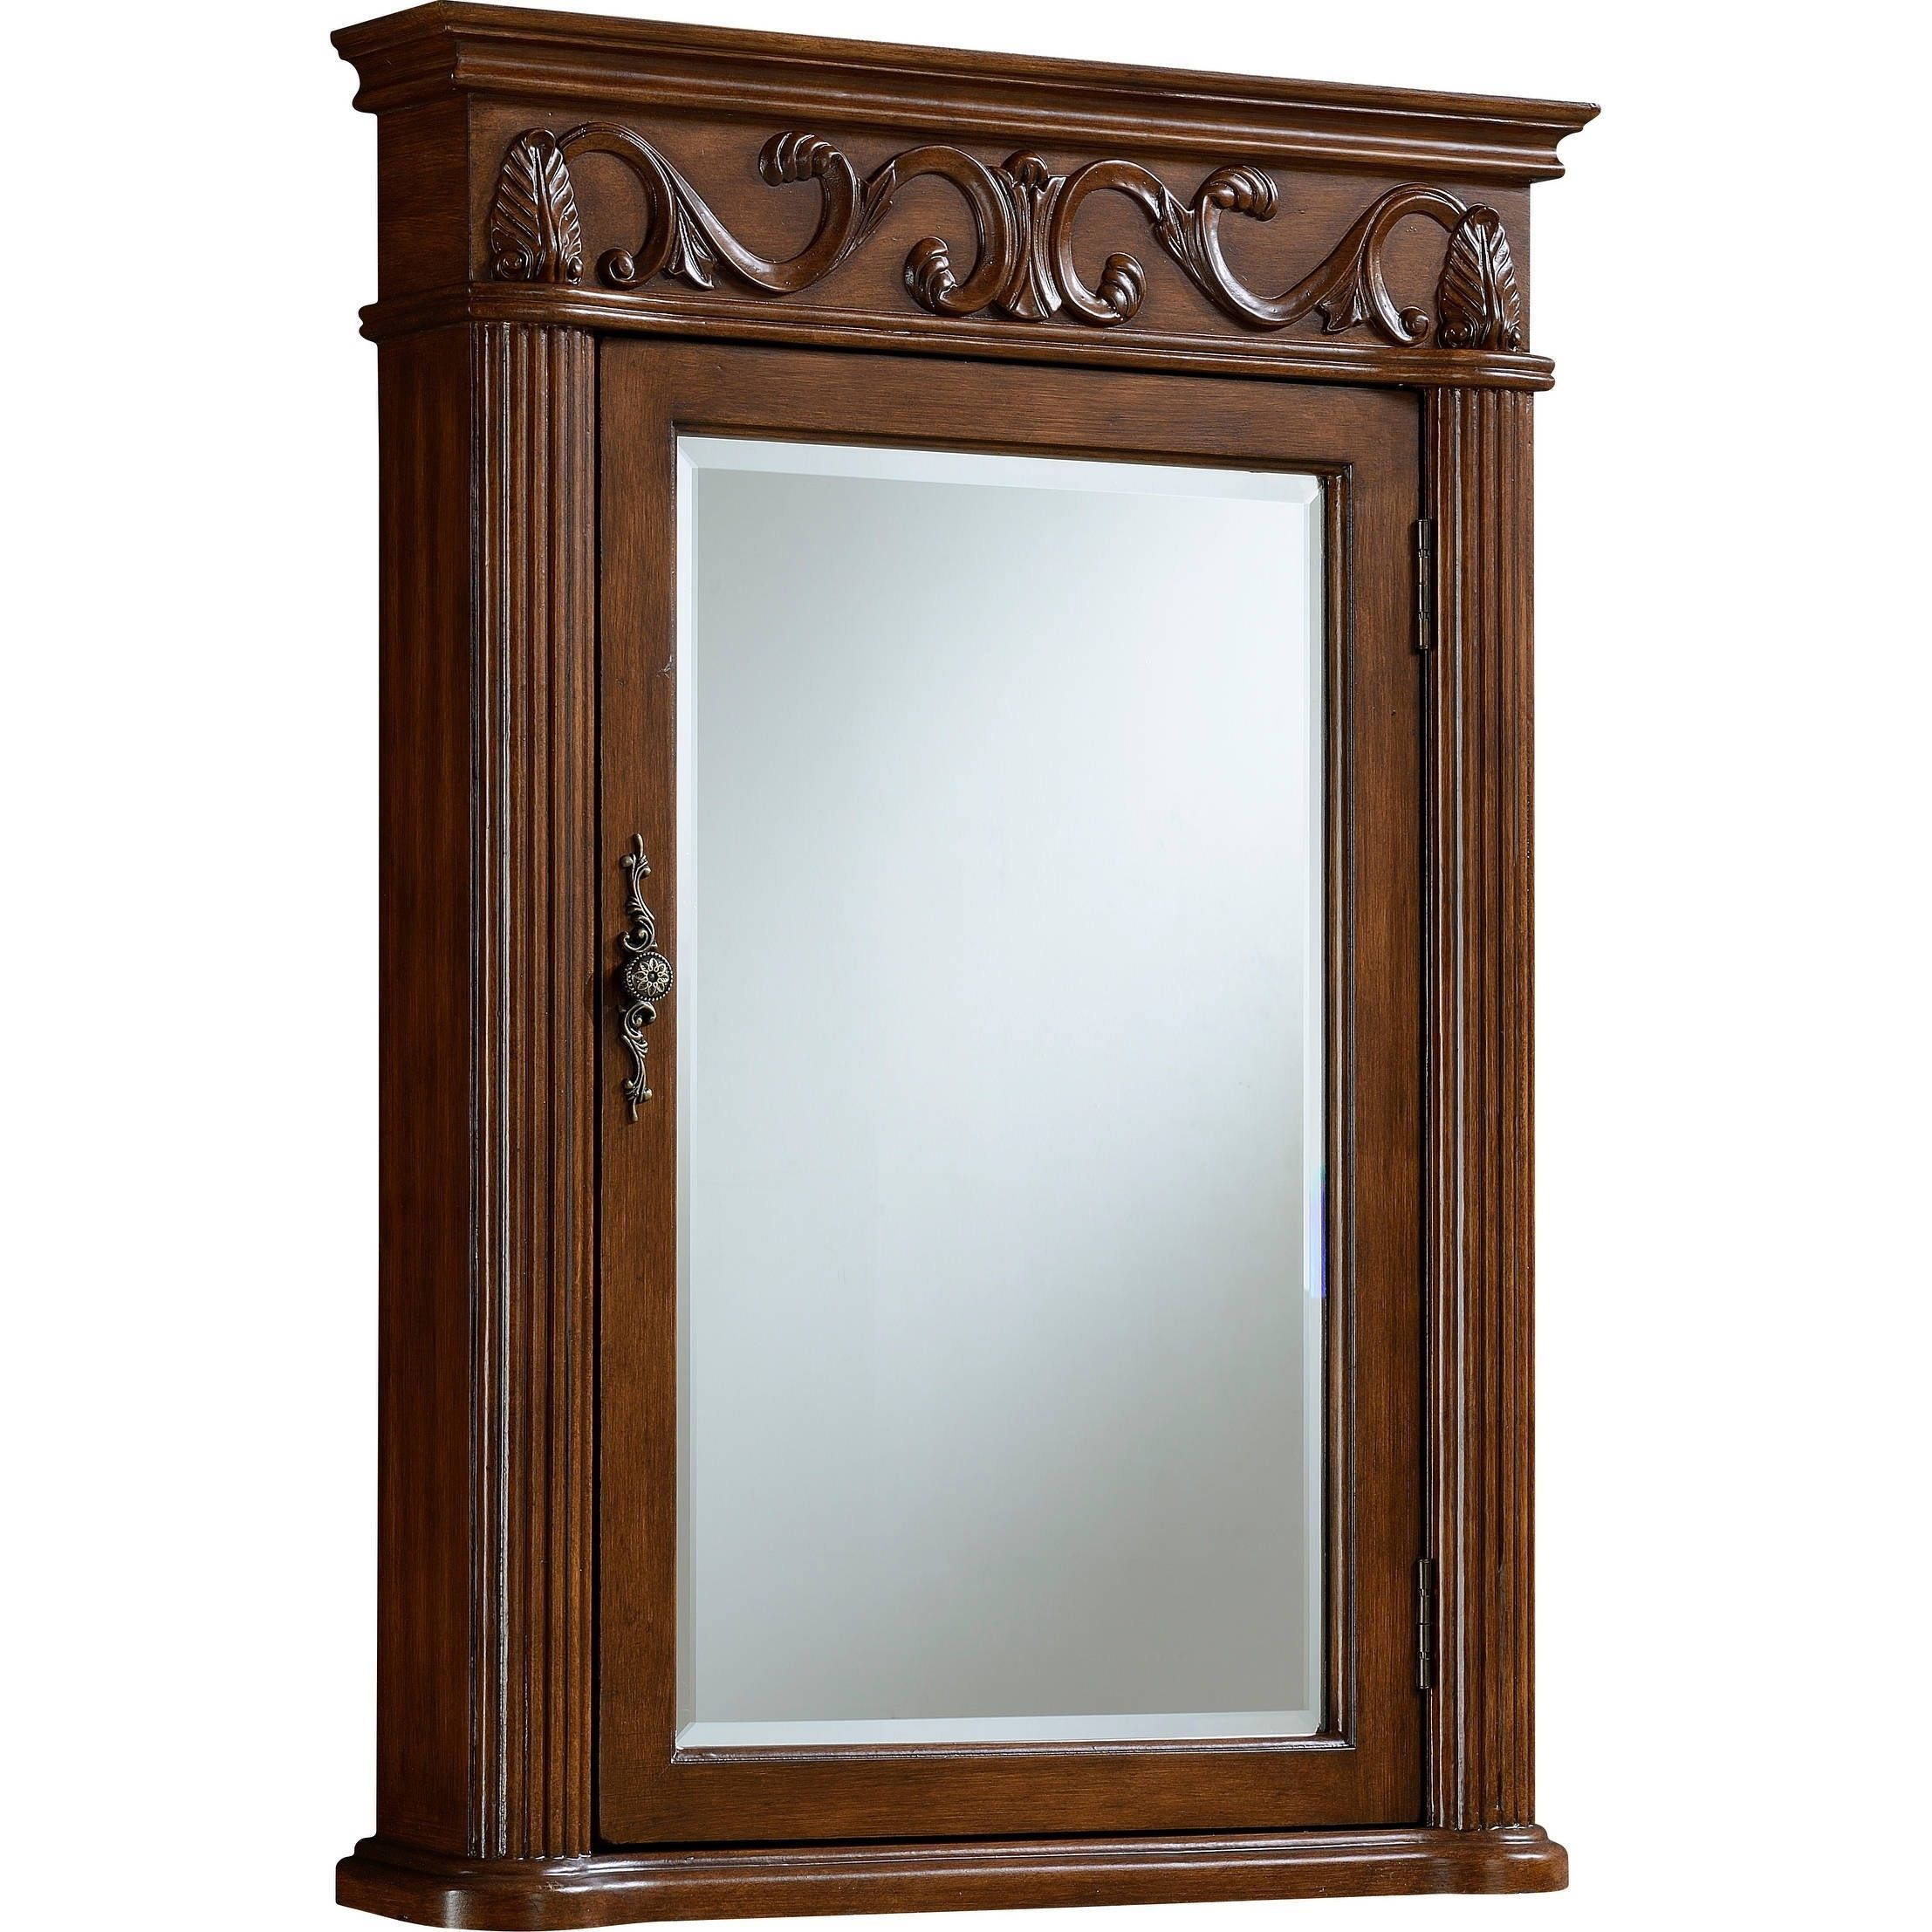 perfect your plus rectangle having medicine sink brown wooden on to dark floating vanity white wall bathroom and decoration cabinet interior beautiful mirror